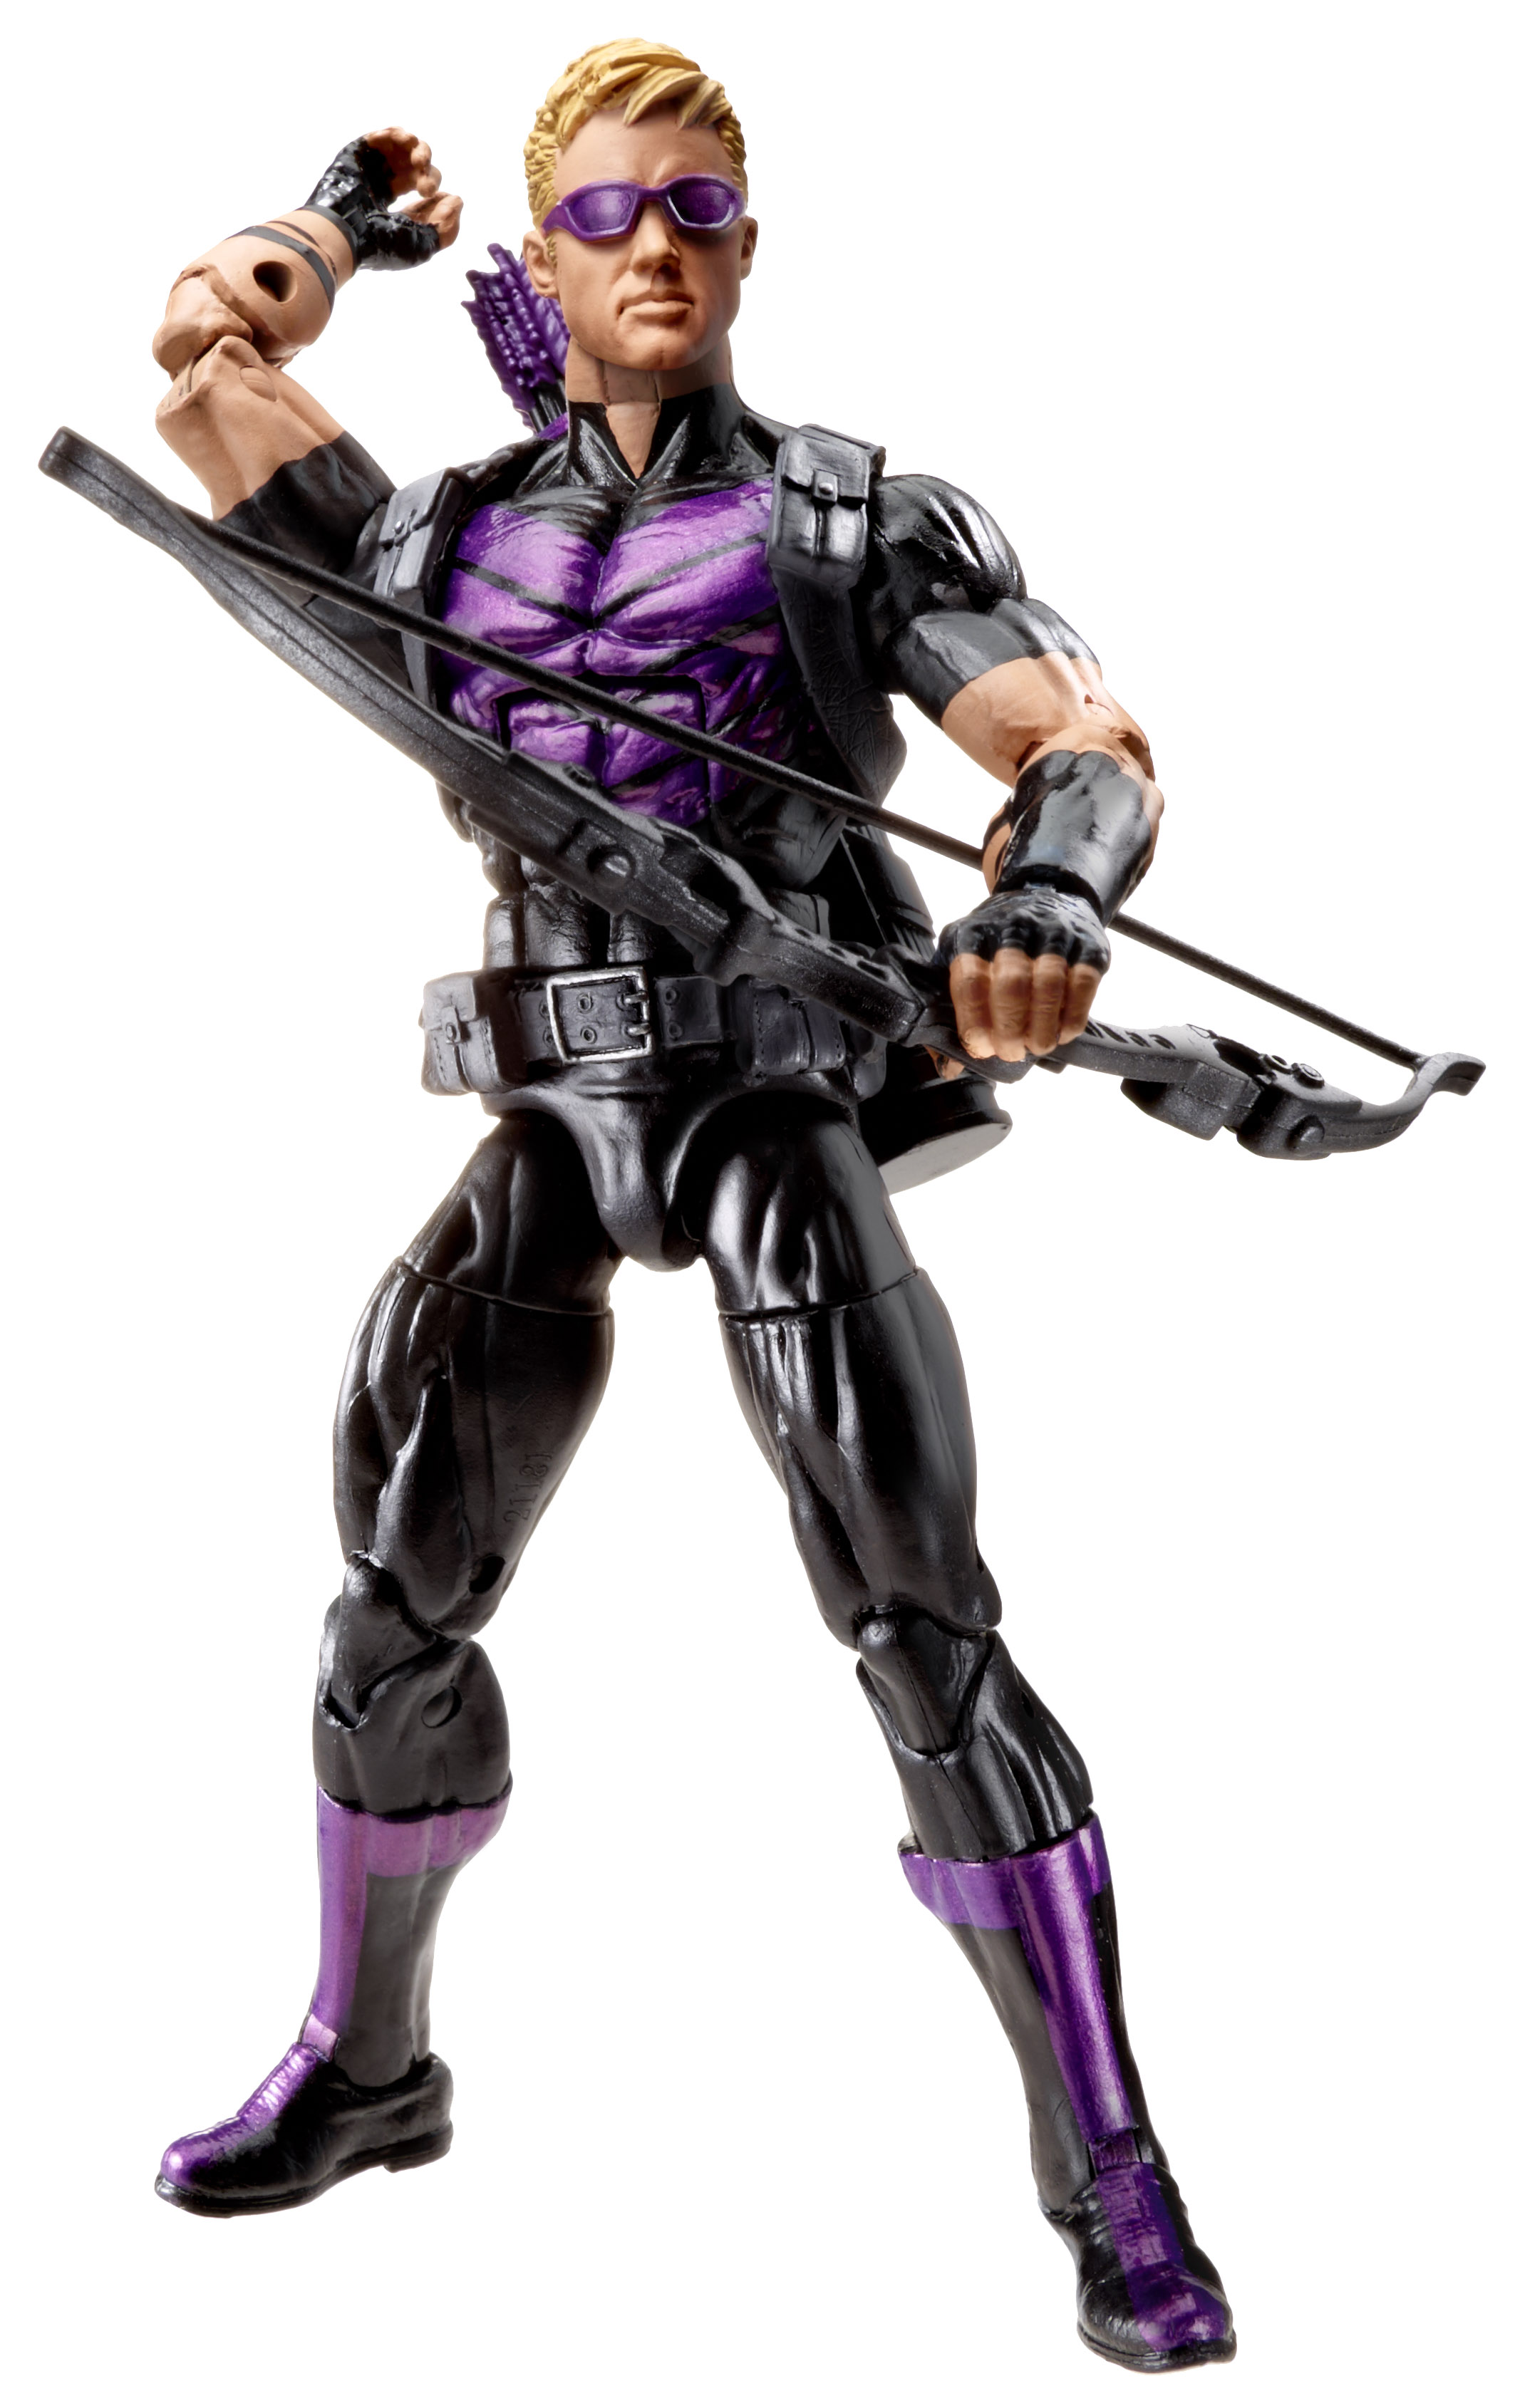 http://marveltoynews.com/wp-content/uploads/2013/04/2013-Marvel-Legends-Modern-Hawkeye-Variant-Figure-Series-2-Wave-5.jpg